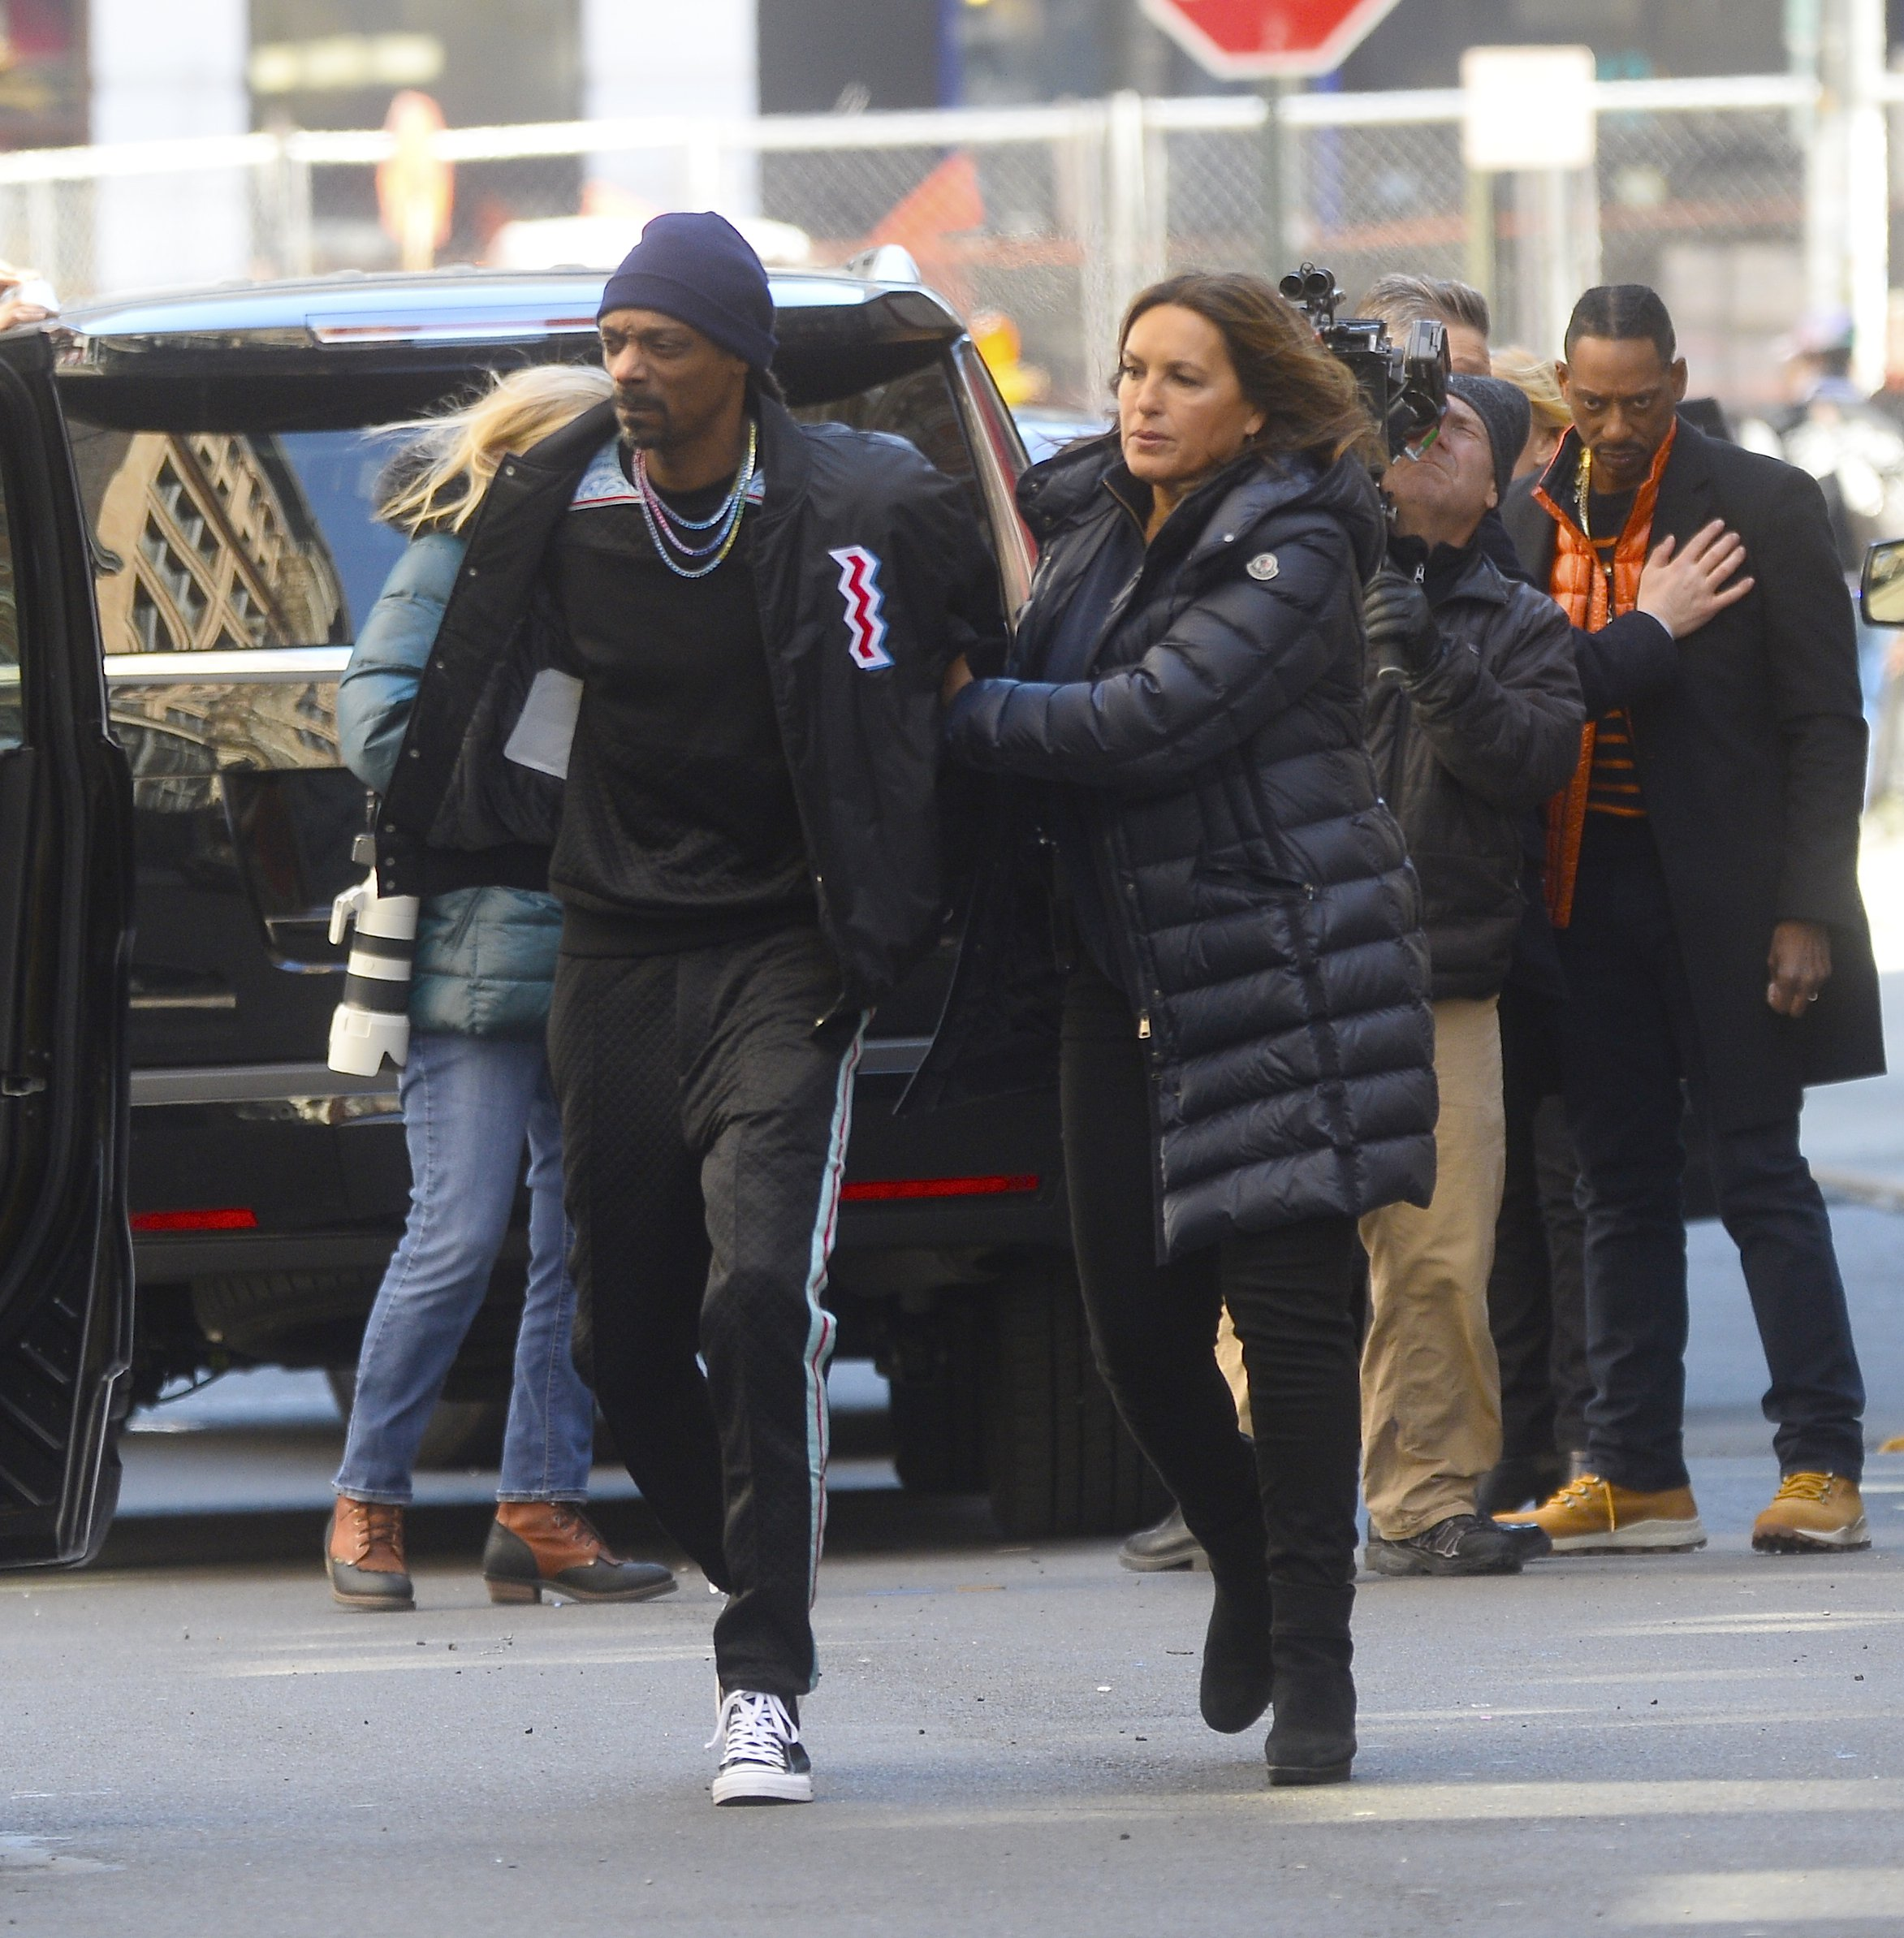 NEW YORK, NY - APRIL 01: Actress Magdolna Hargitay and Snoop Dogg are seen on the set of Law & Order SVU on April 1, 2019 in New York City. (Photo by Raymond Hall/GC Images)